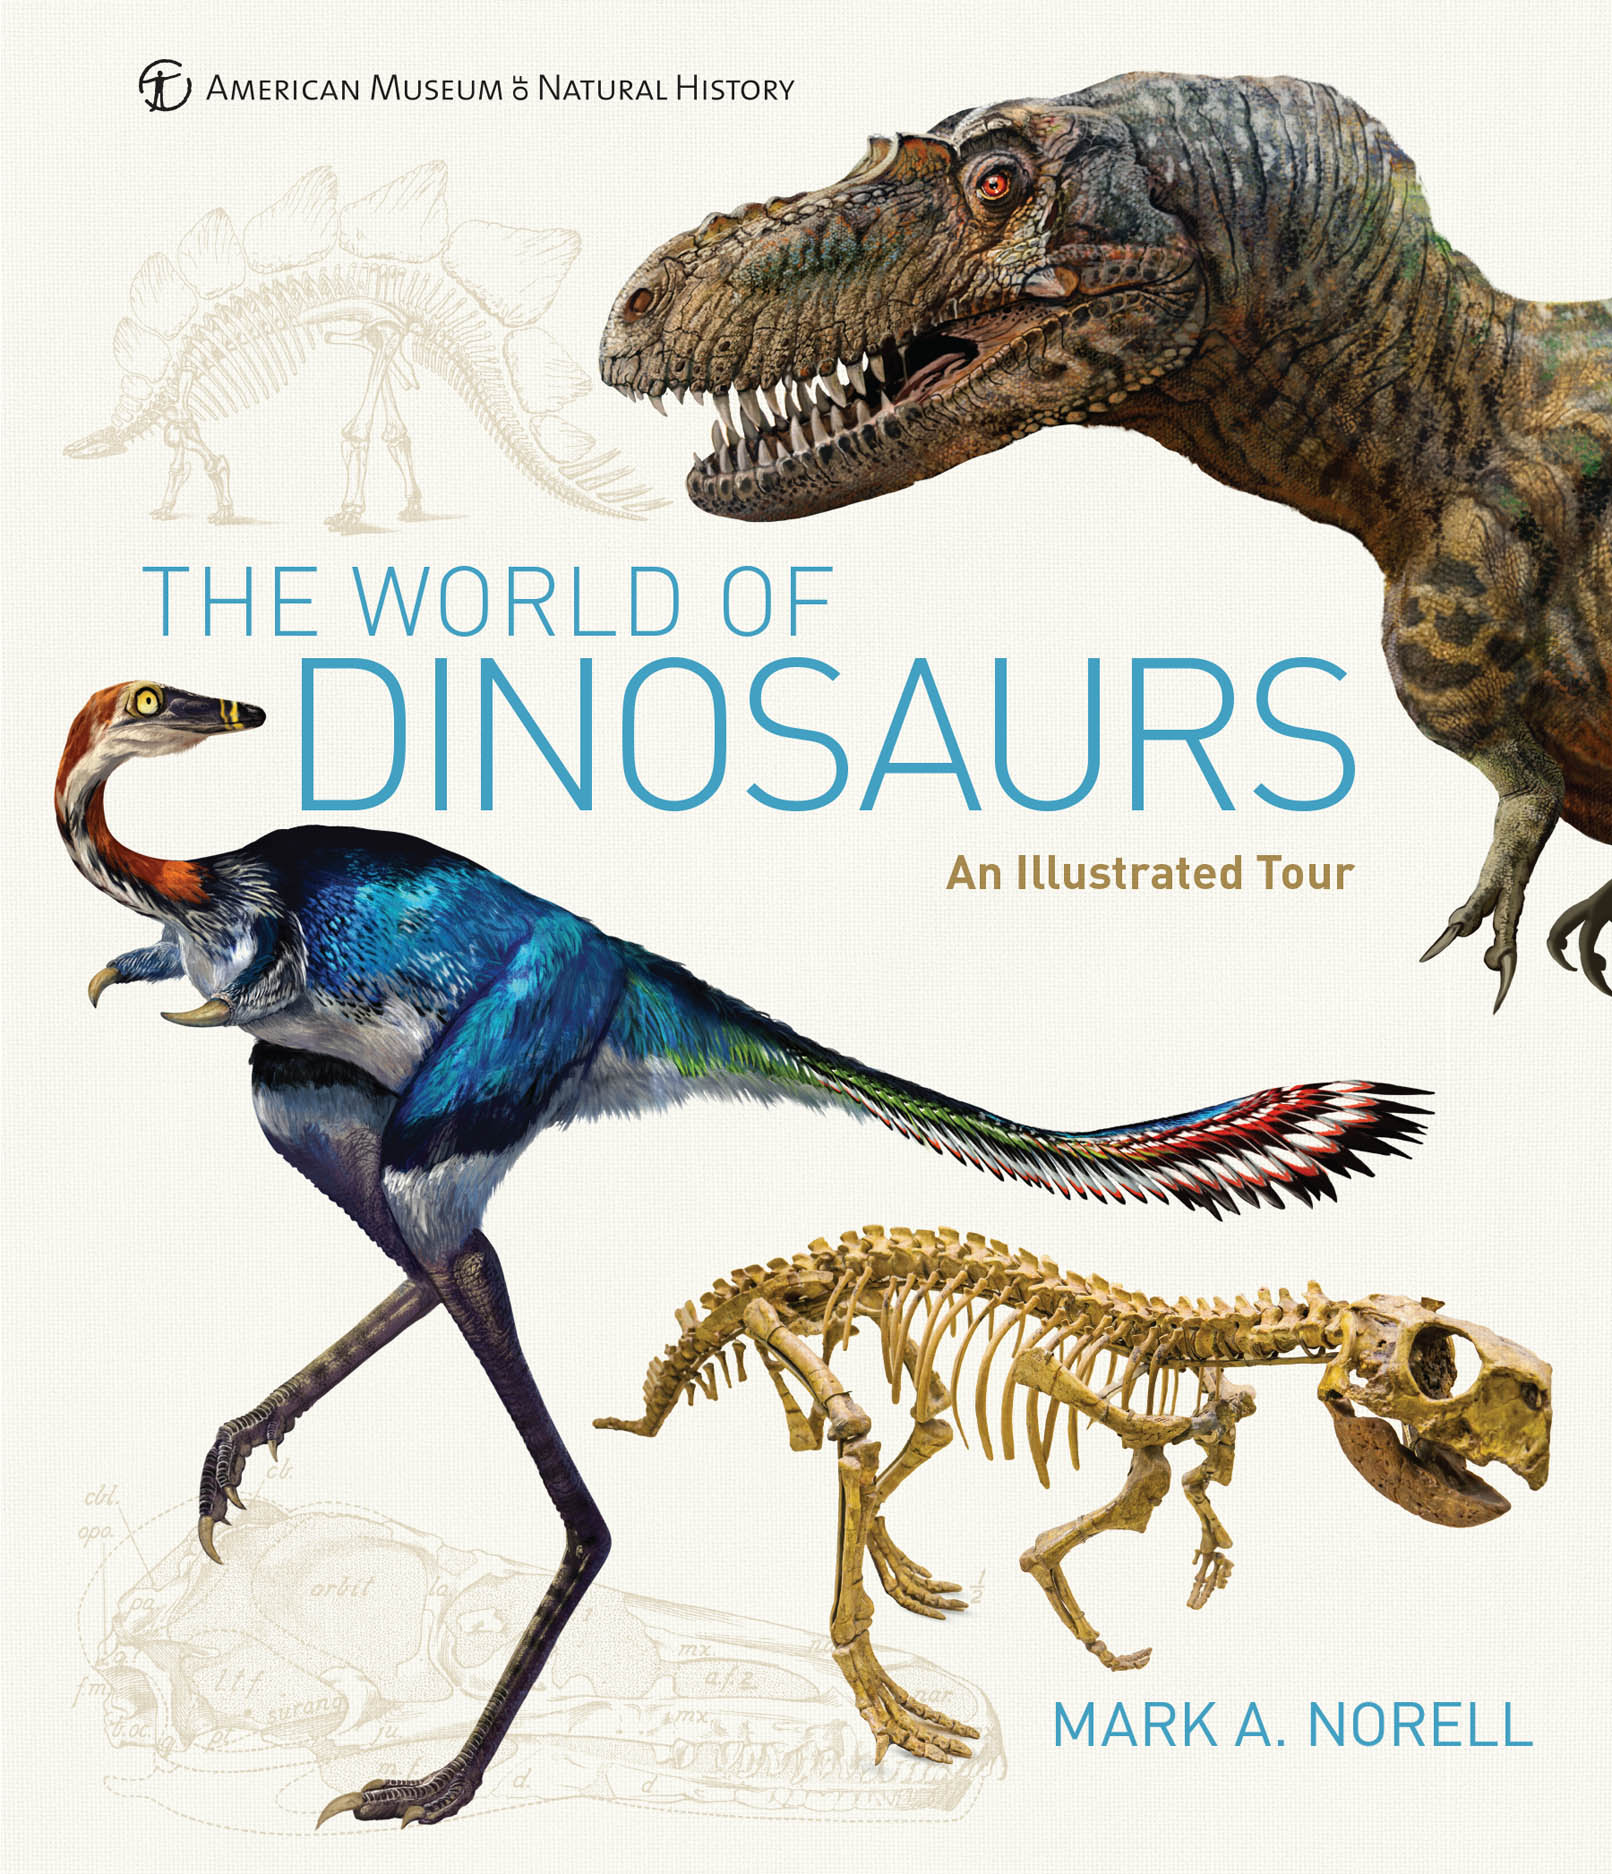 The World of Dinosaurs: An Illustrated Tour